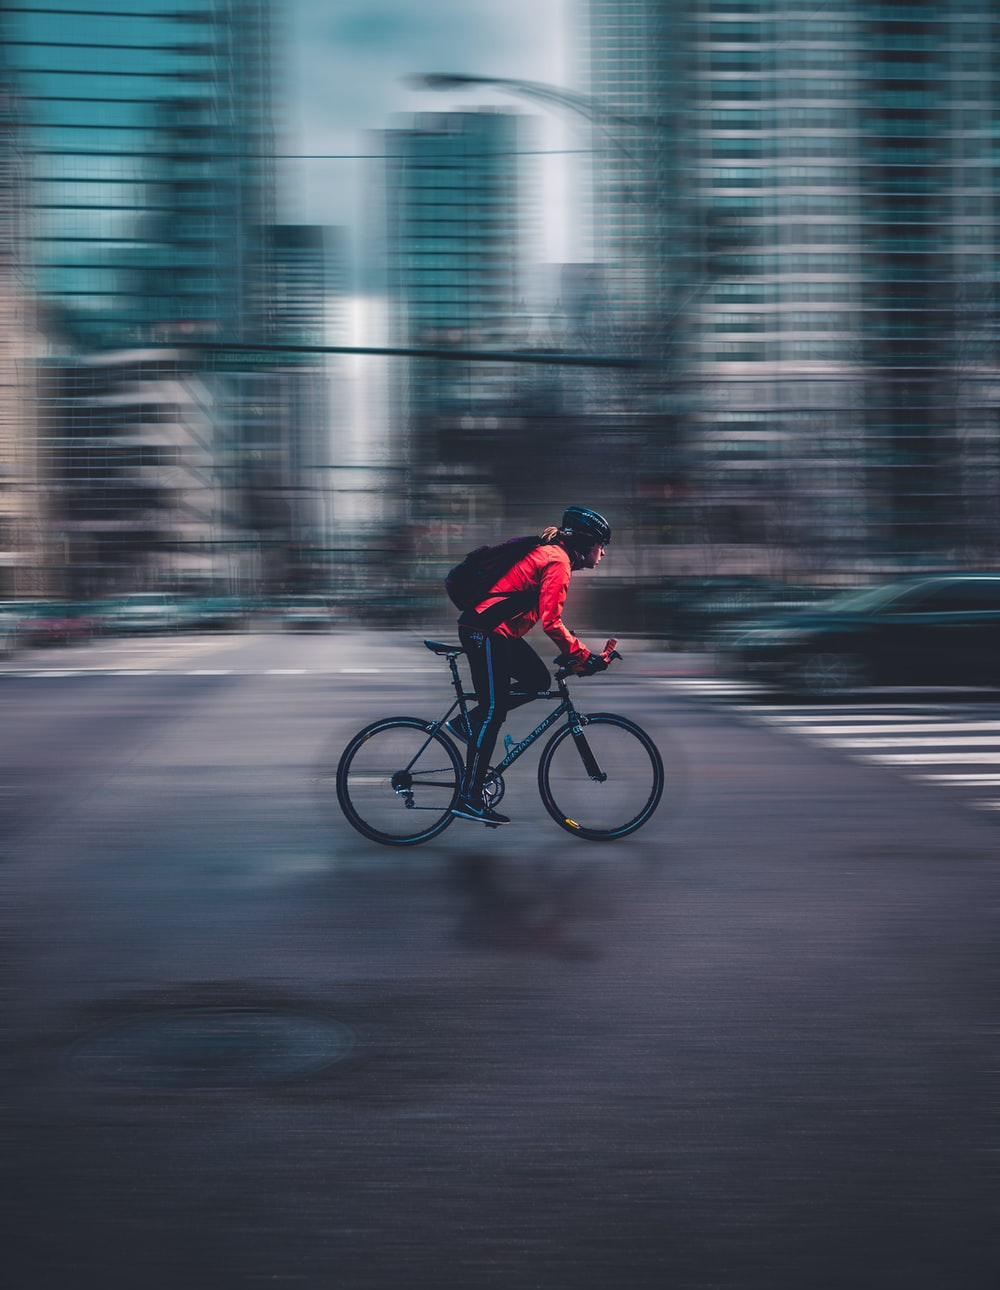 person riding nbicycle